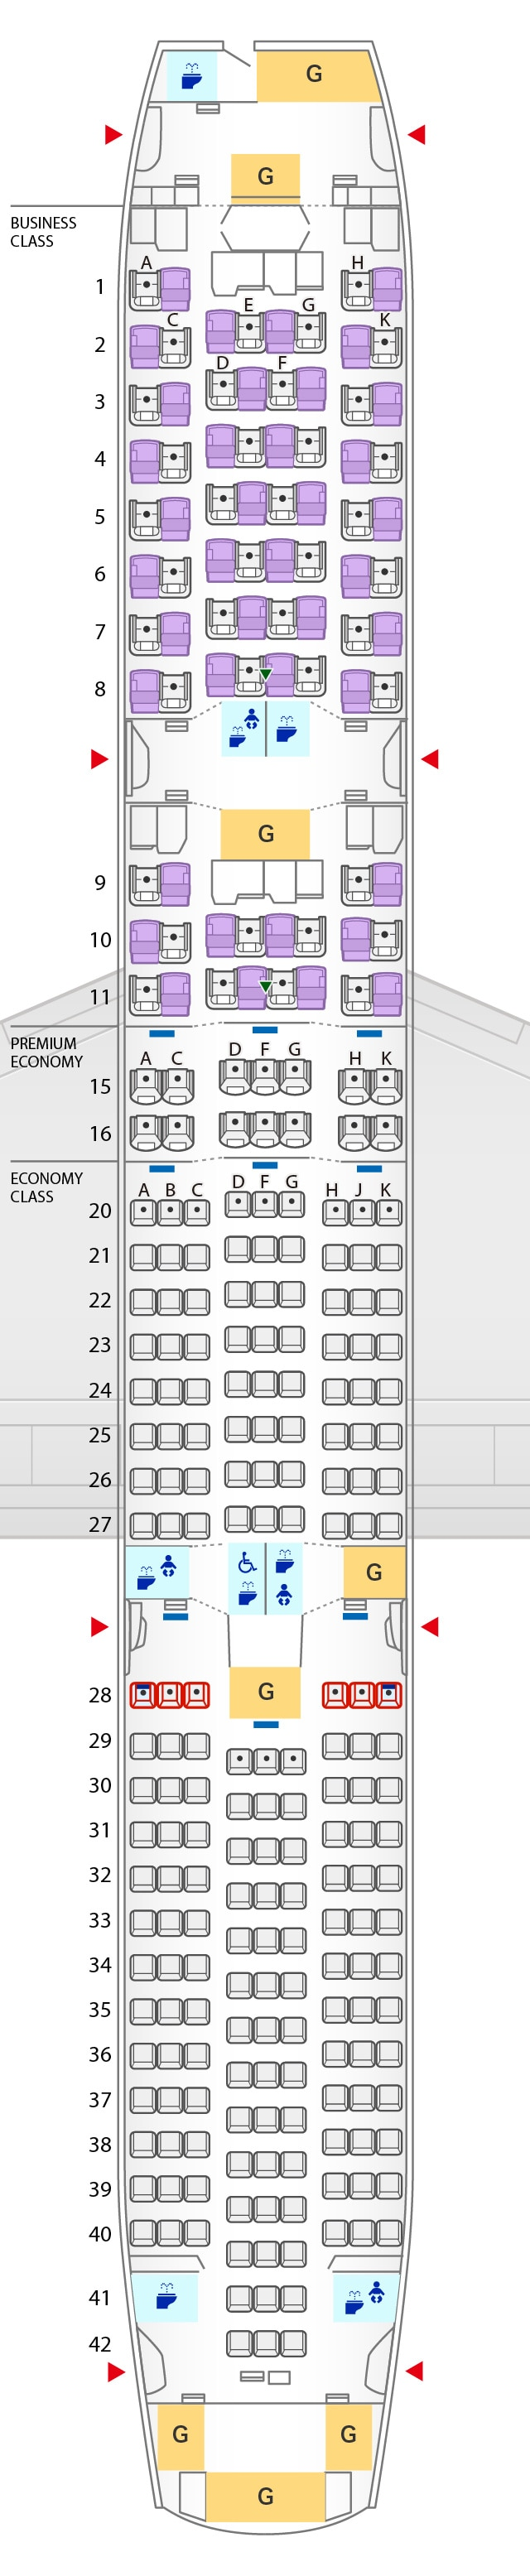 Seat Map of Boeing 787-9 (246 Seats)